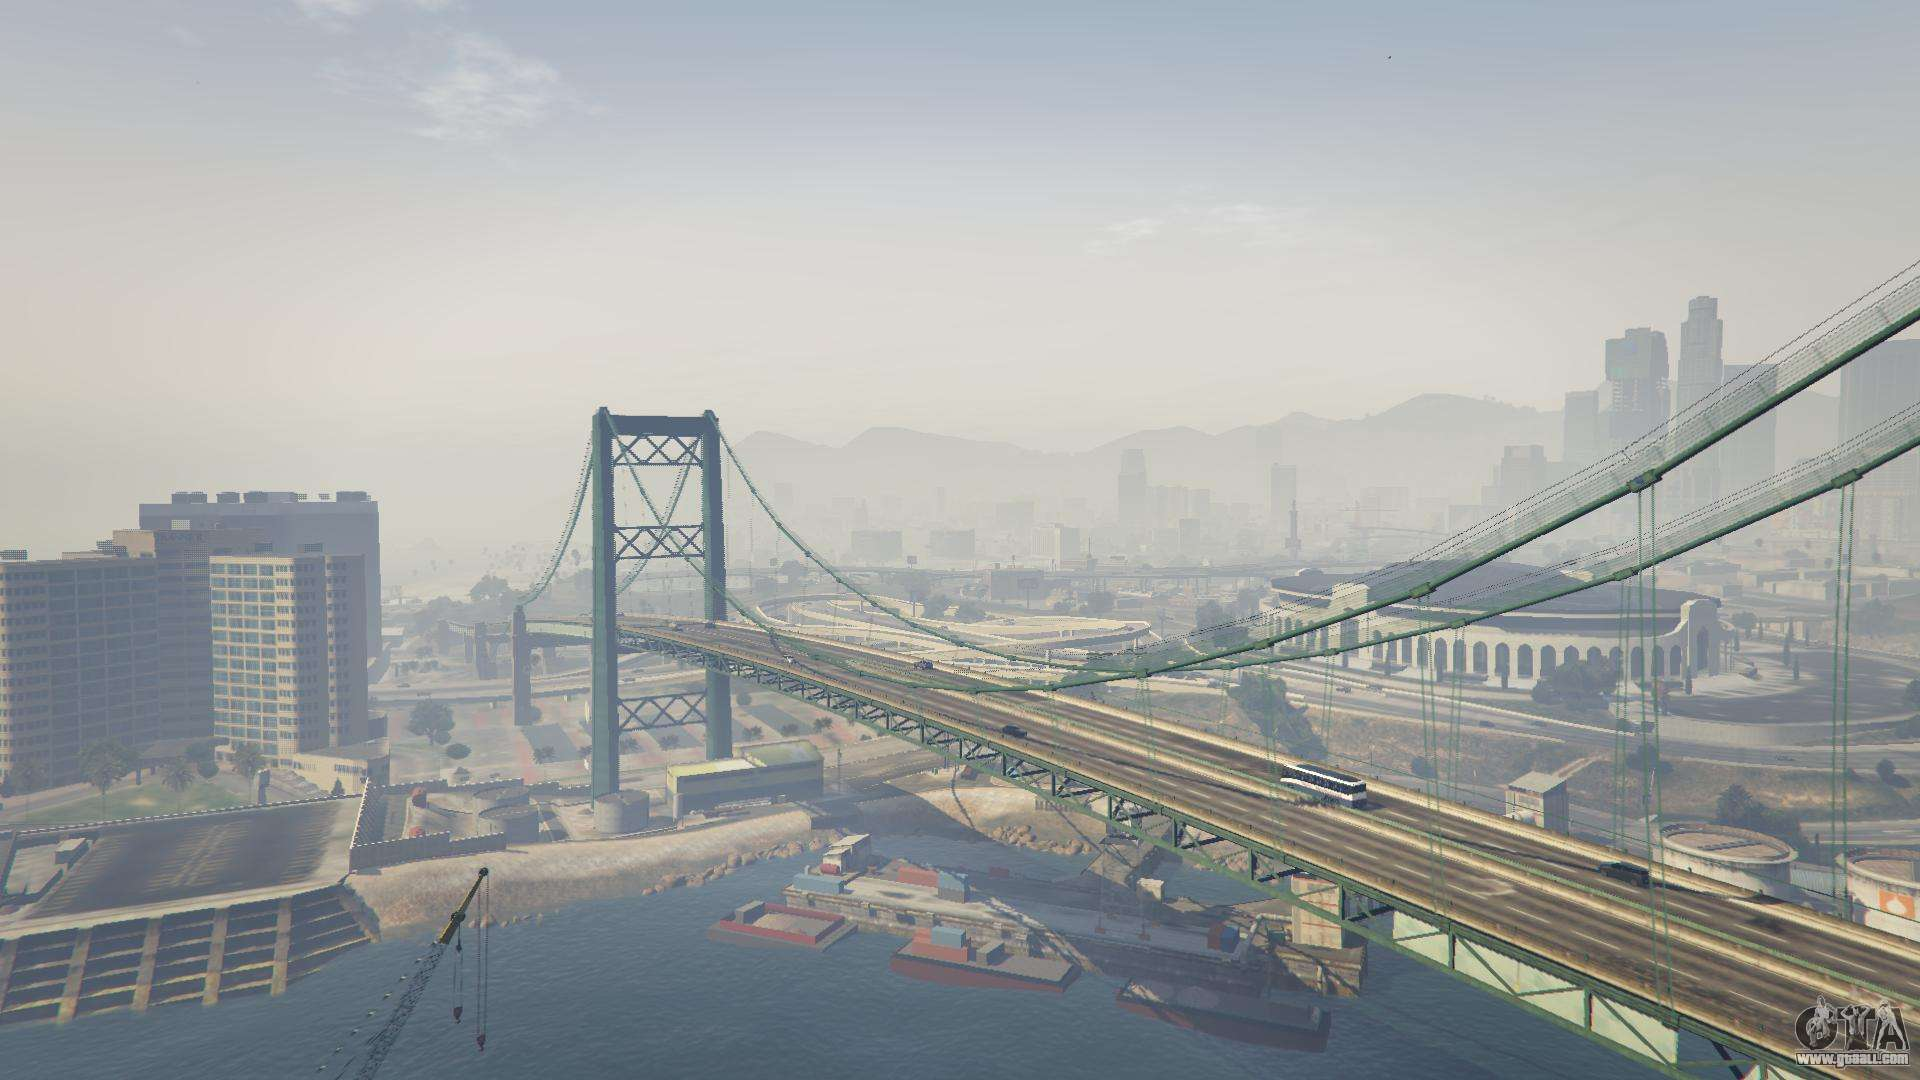 gta 5 activation required bypass